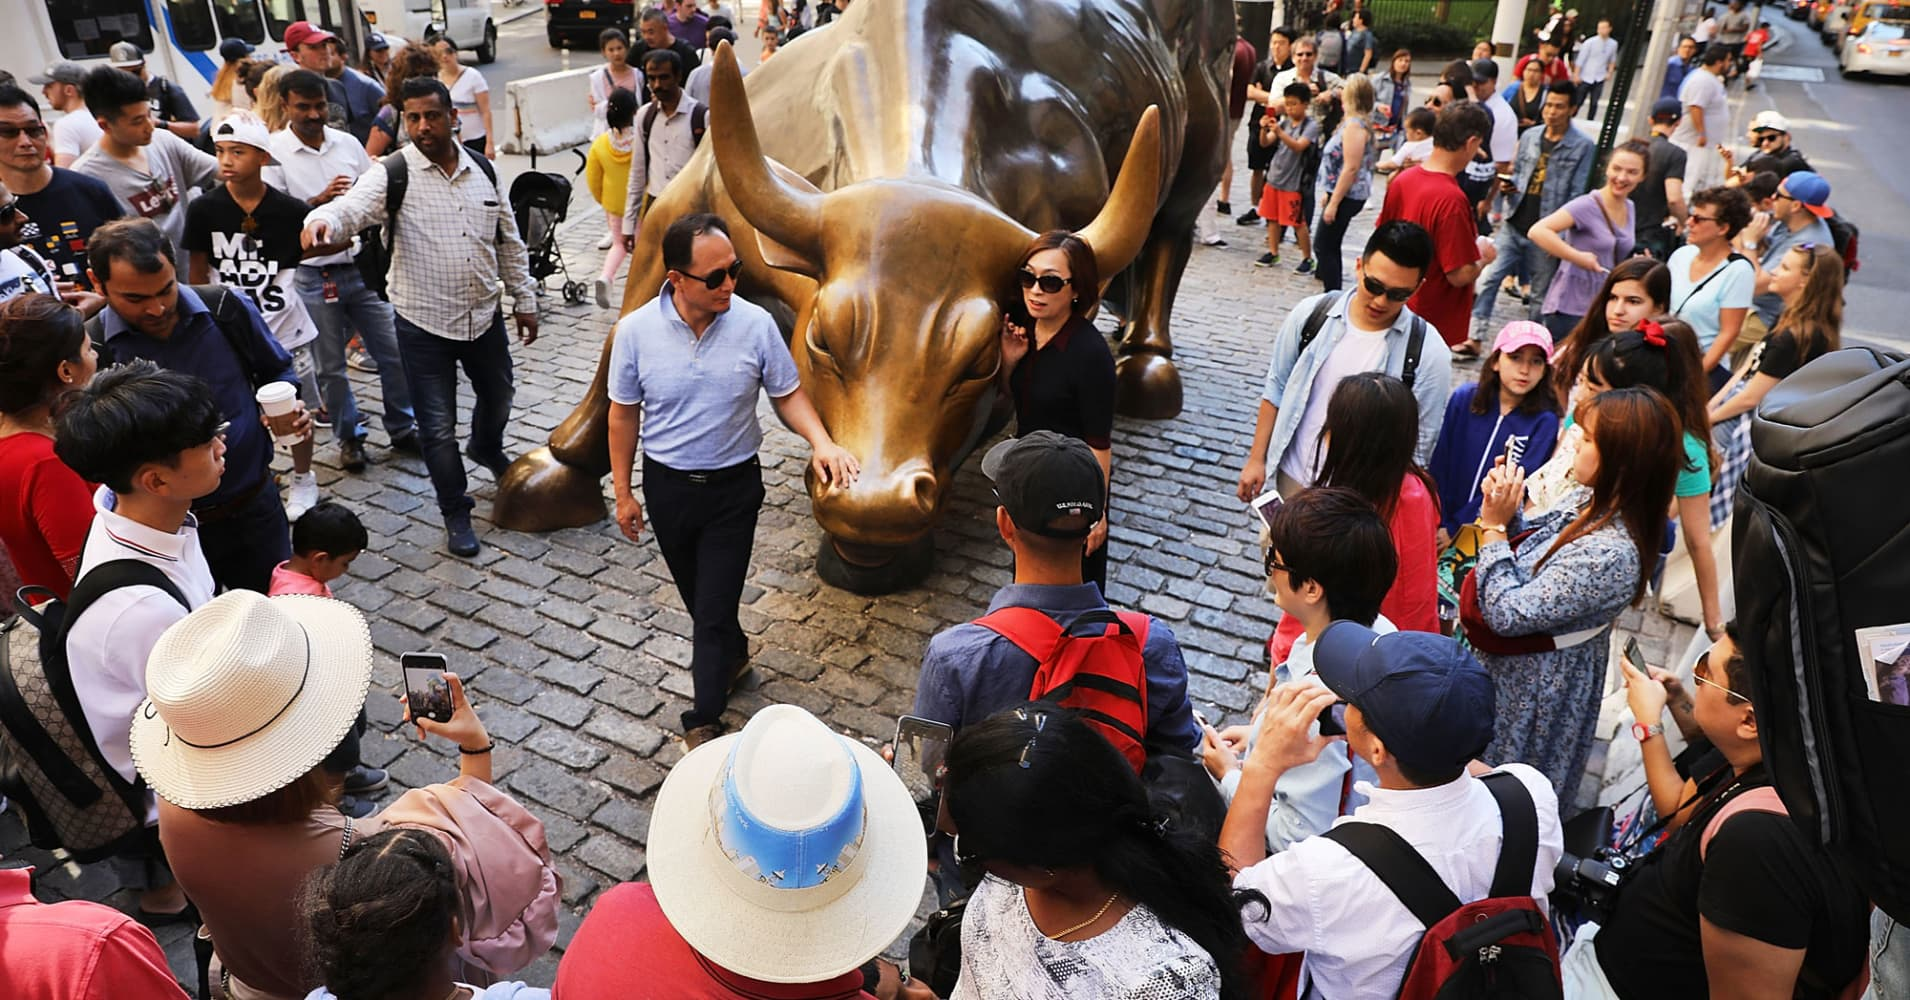 Wall Street's biggest bull sees S&P 500 at records by year's end. Here's how it gets there